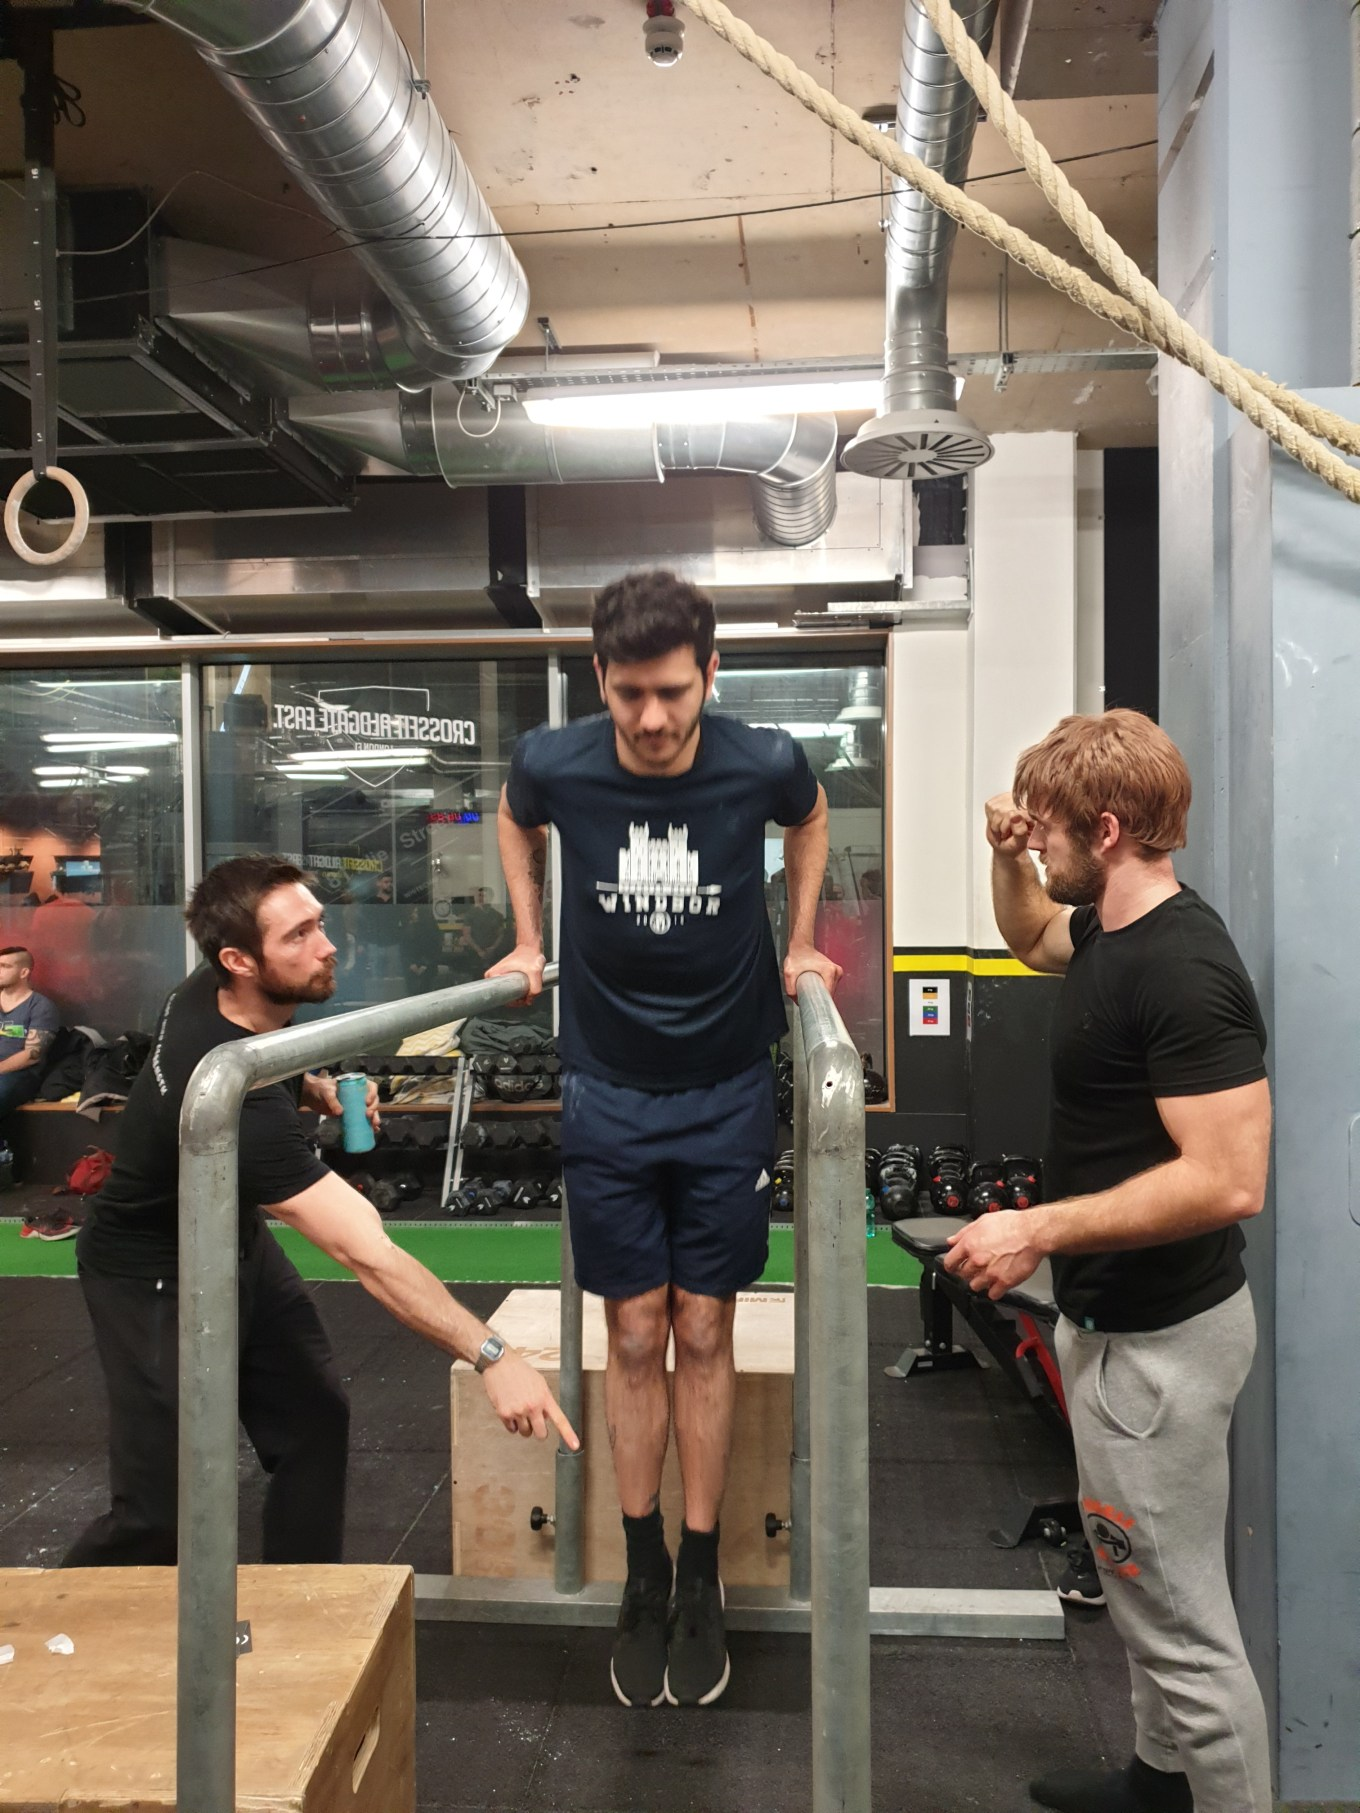 Dip action shot 1 Crossfit aldgate DEC 2019